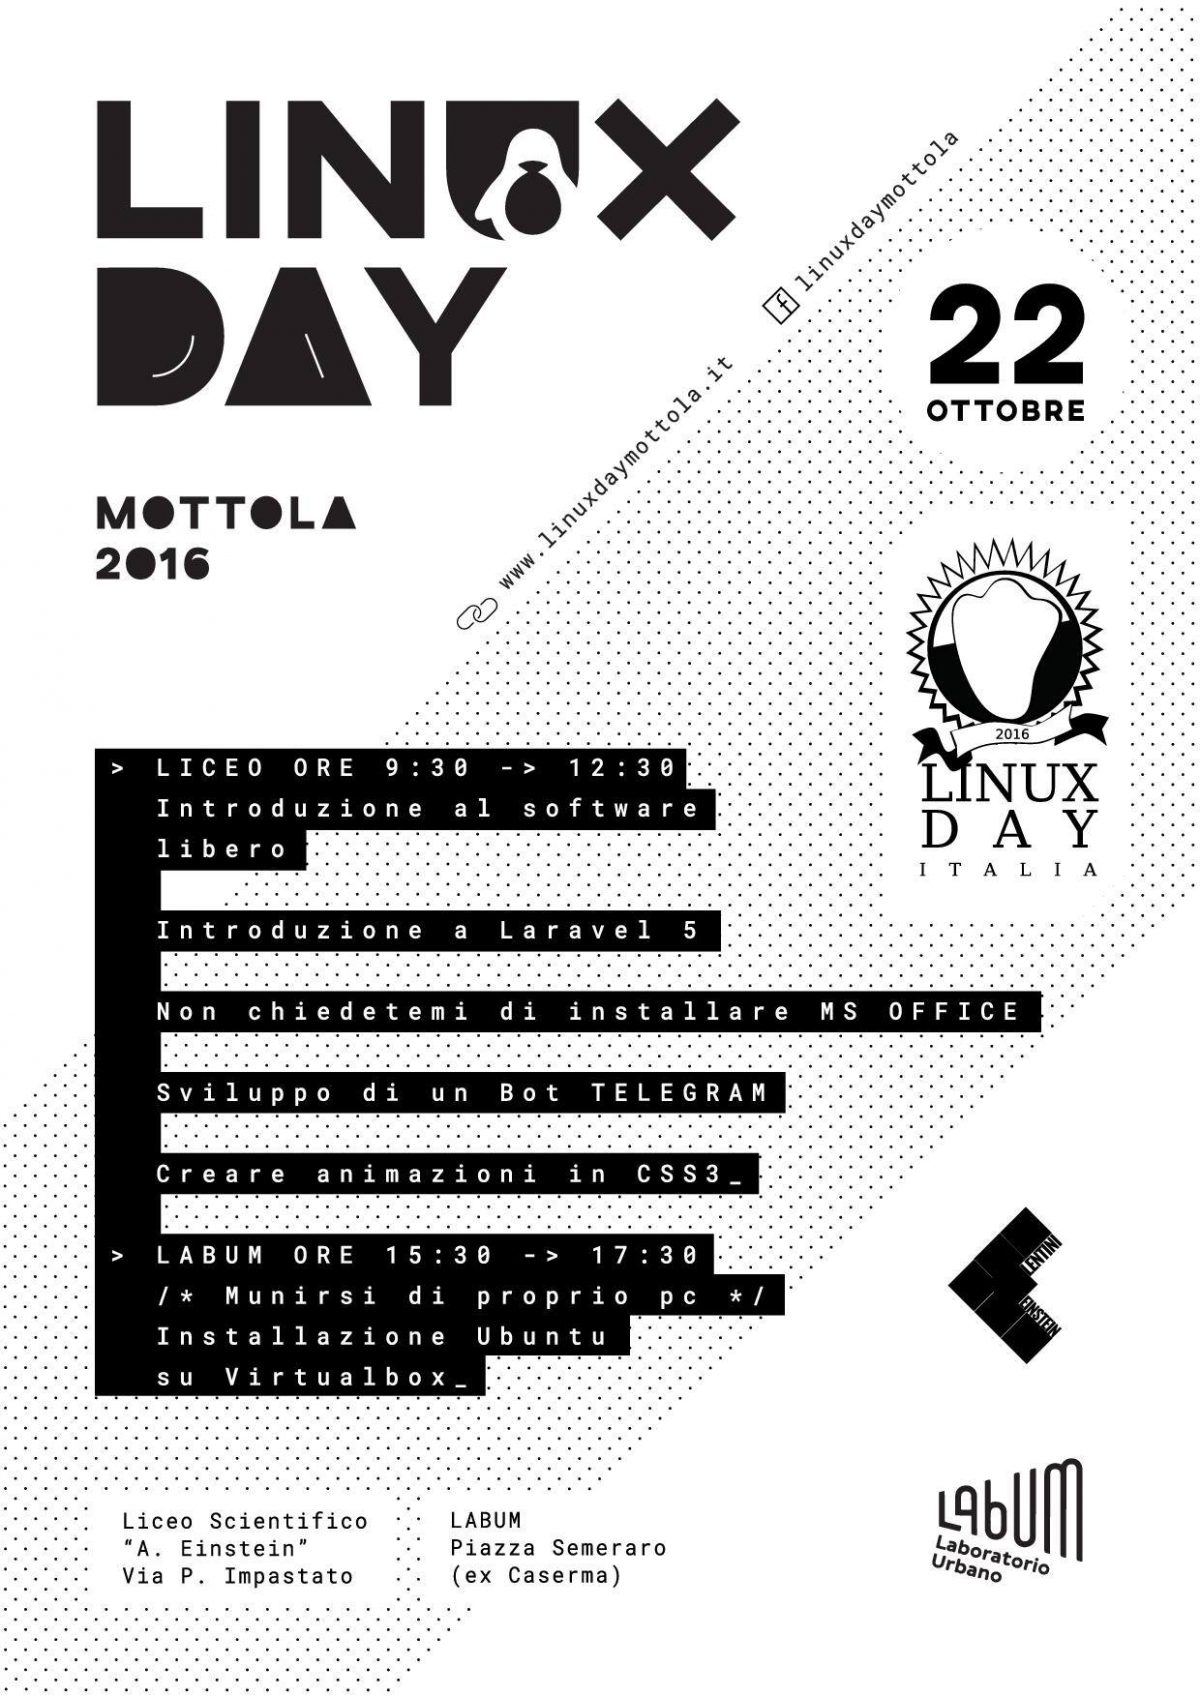 Linux Day Mottola 2016